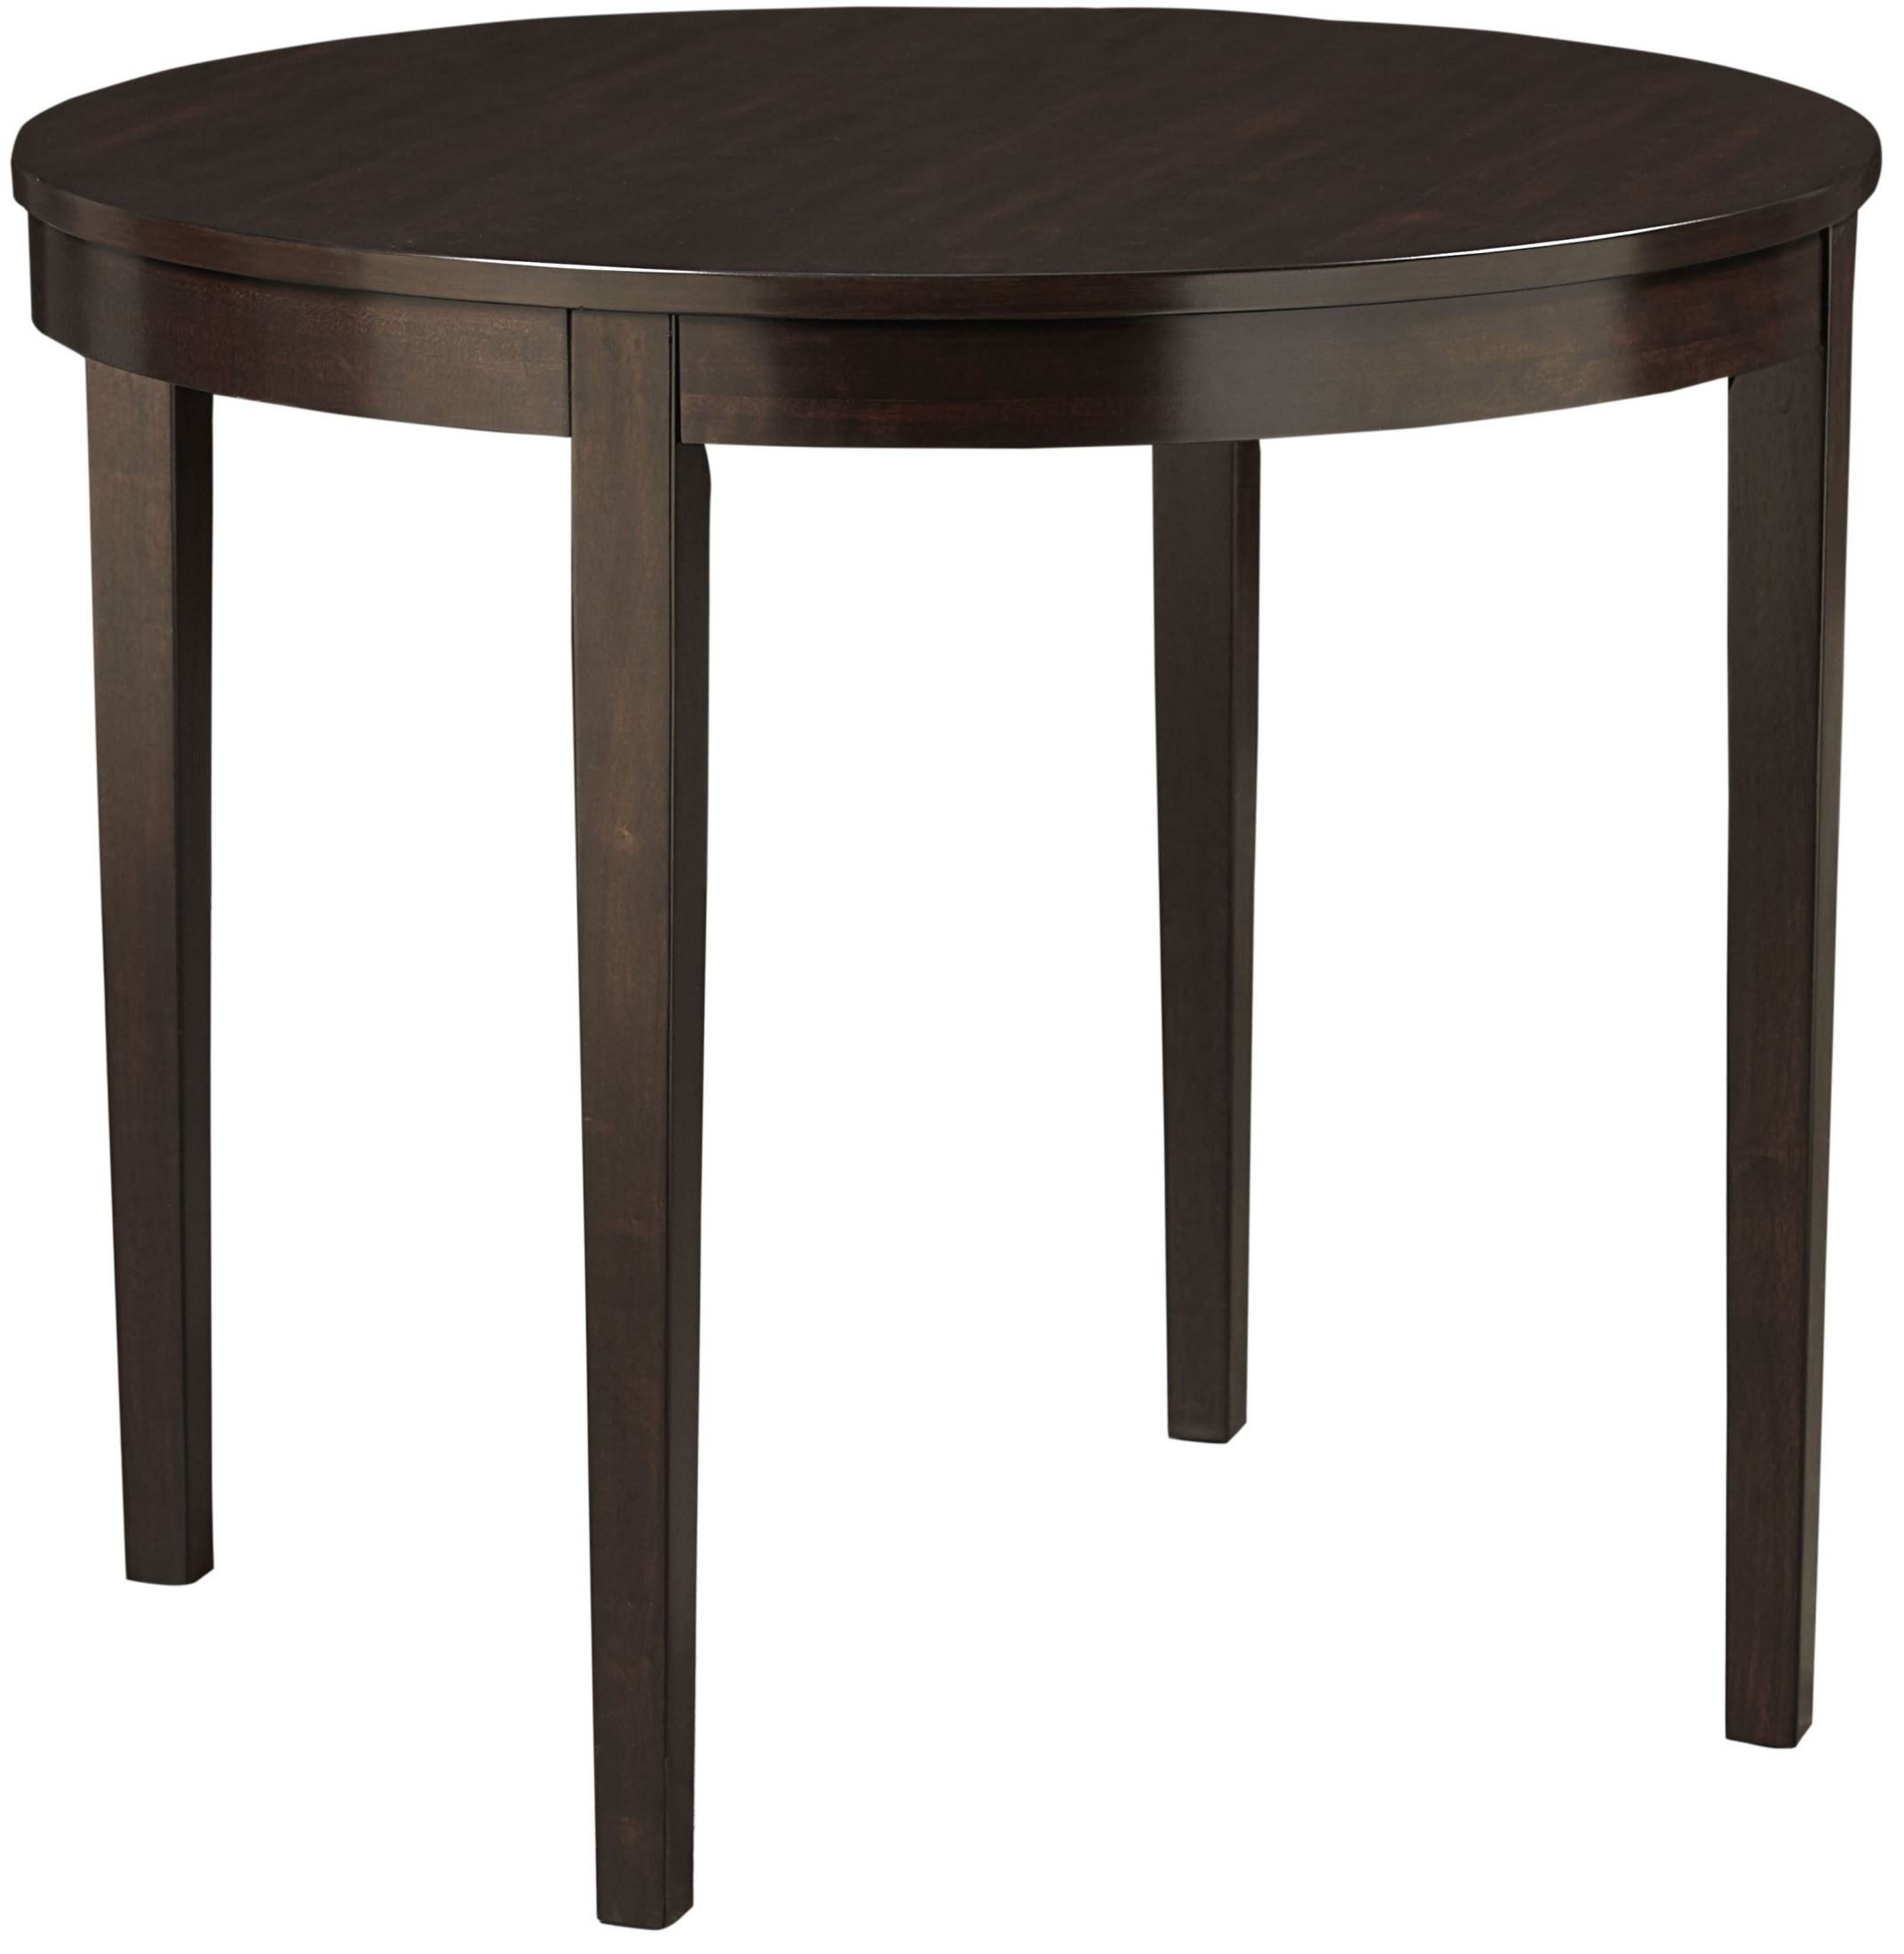 noveau dark merlot counter height round dining table 17576 standard furniture. Black Bedroom Furniture Sets. Home Design Ideas